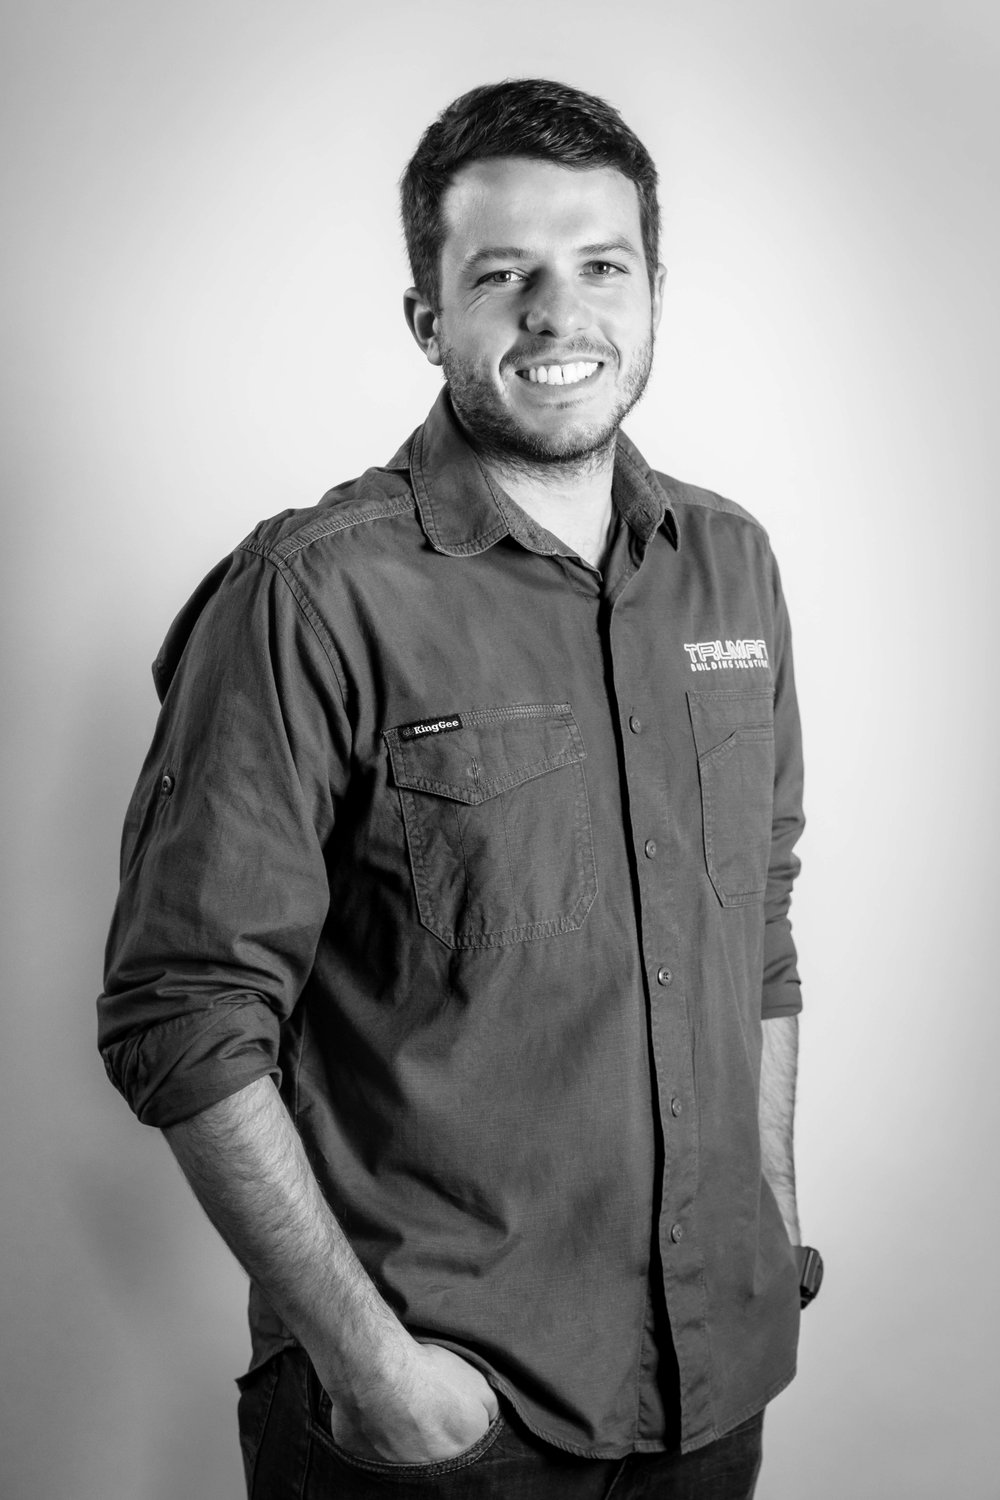 VITOR REINA    Estimator/Contracts Administrator   After completing his Engineering degree in Brazil, Vitor has worked in Sydney for many years on high-end residential projects. He works closely with George on tender submissions, resourcing and supplier management.